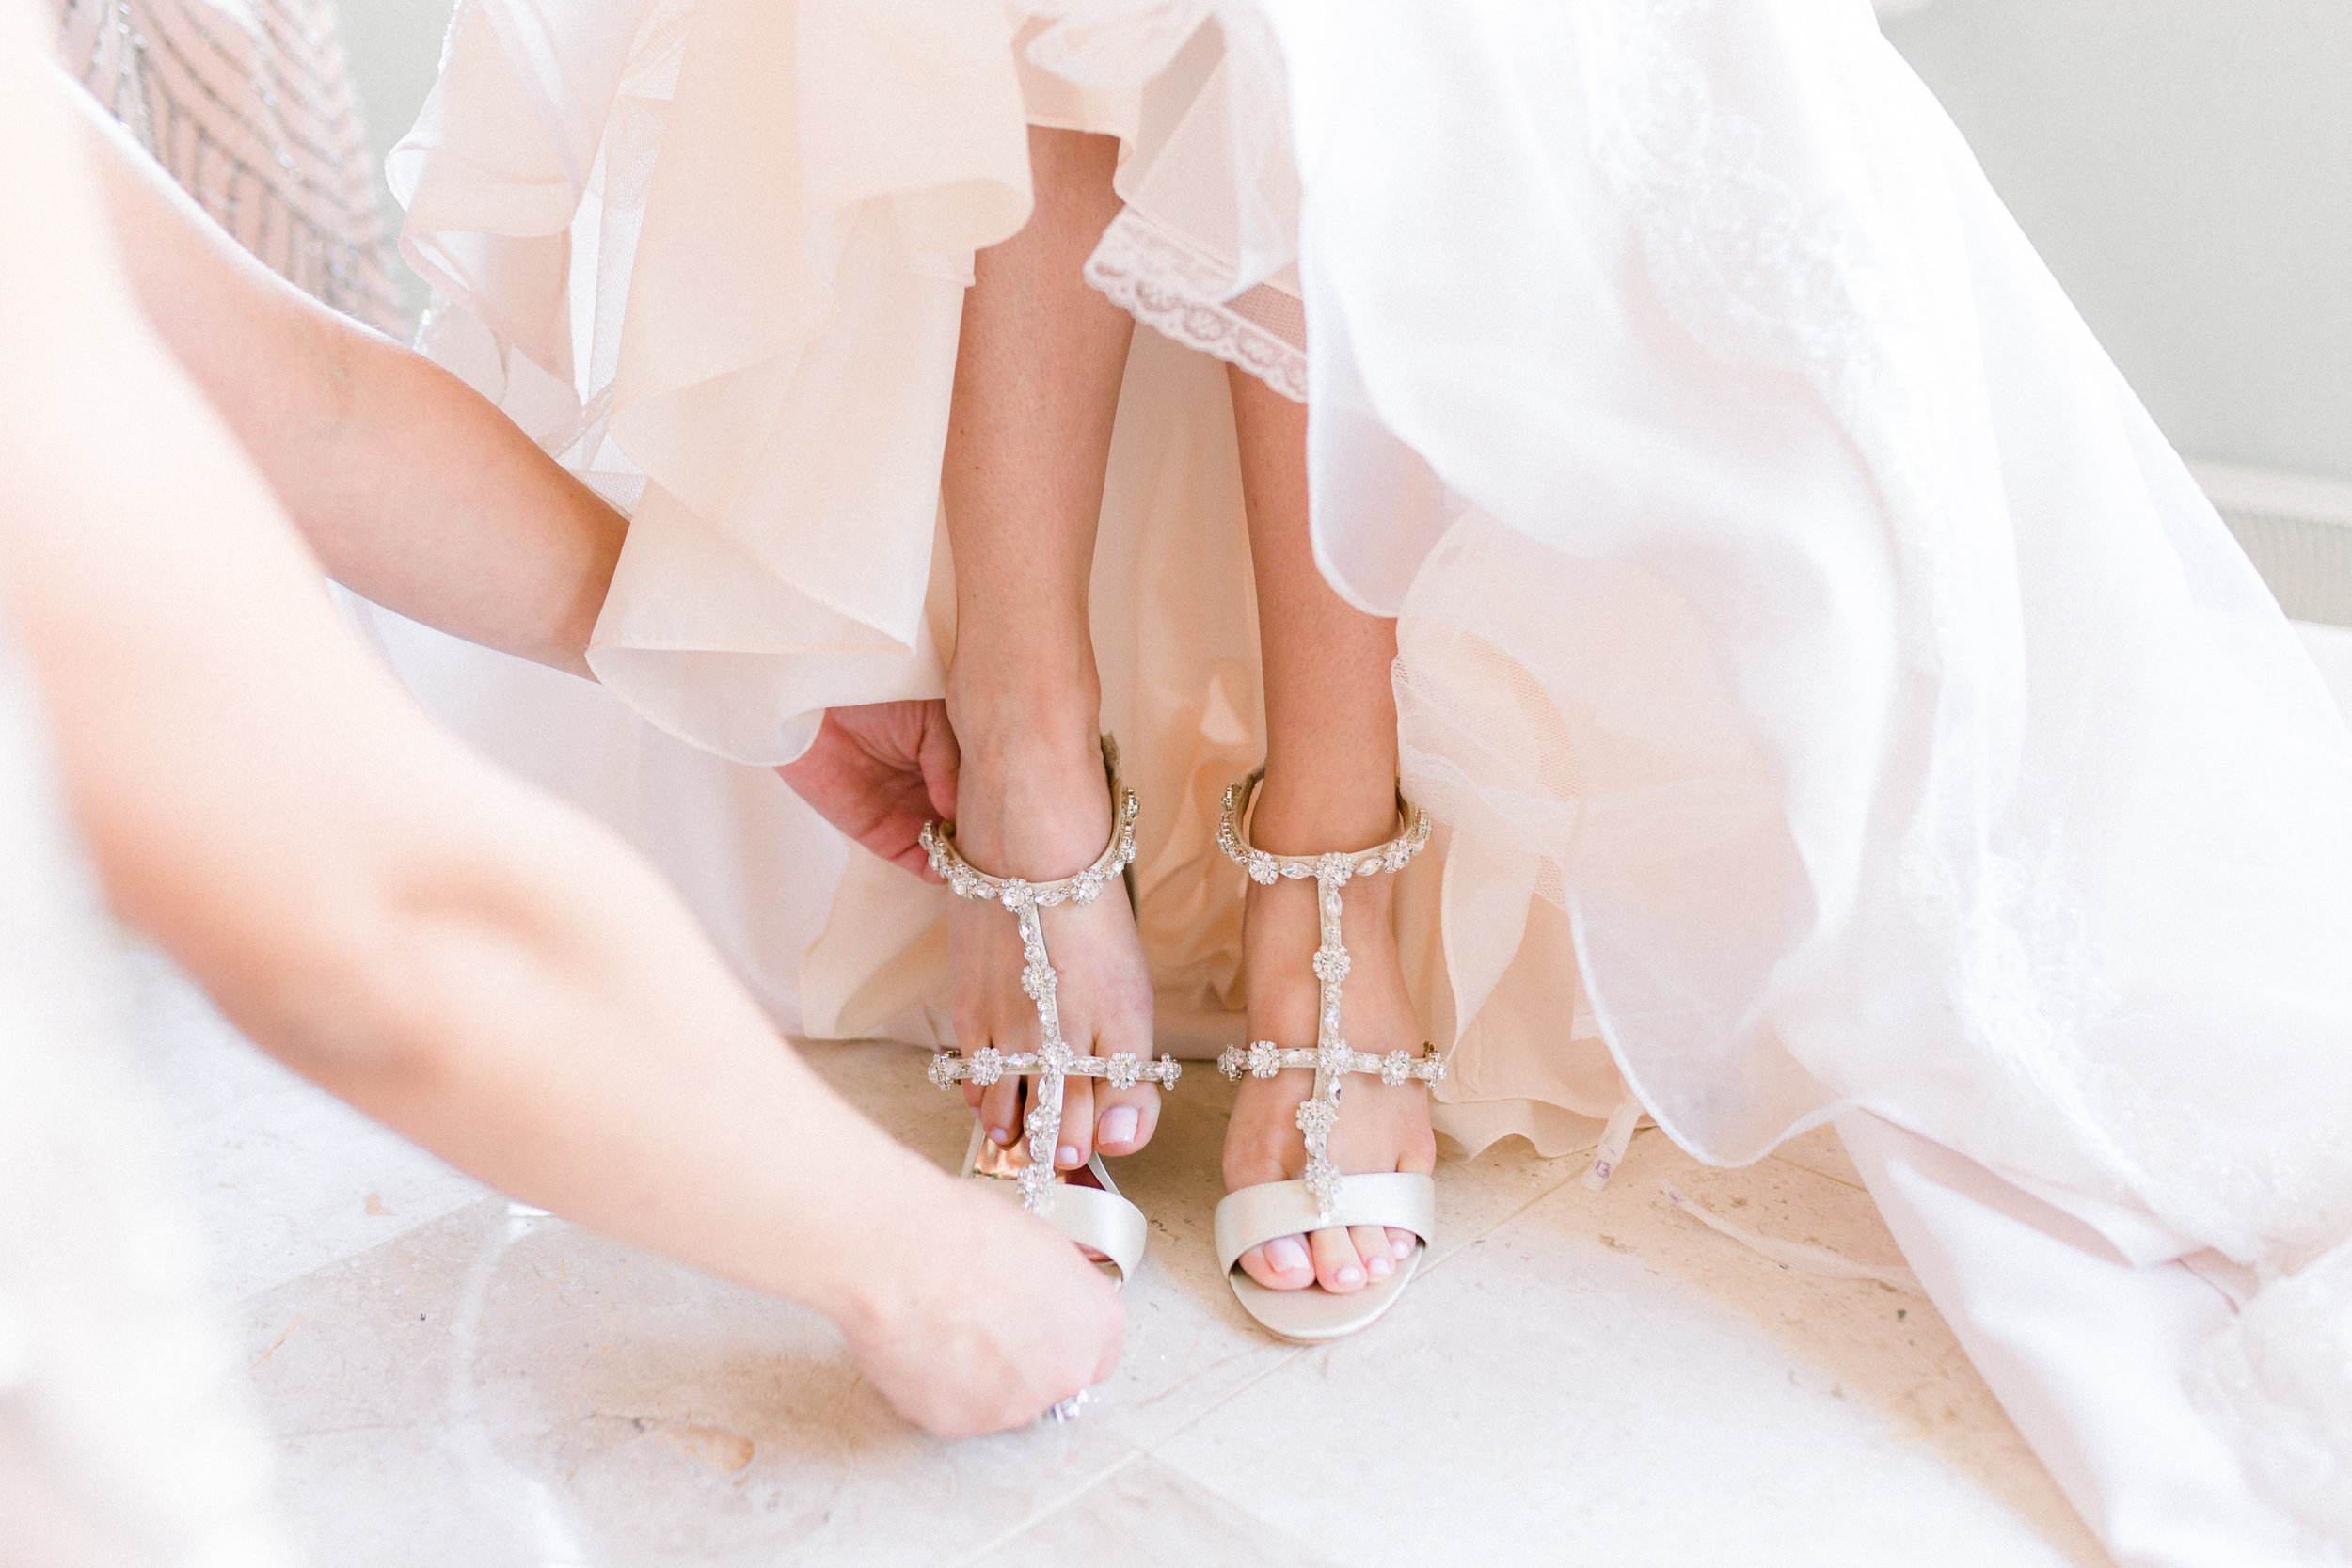 Bride putting on Badgley Mischka shoes for Pittsburgh wedding planned by Exhale Events. Find more wedding inspiration at exhale-events.com!